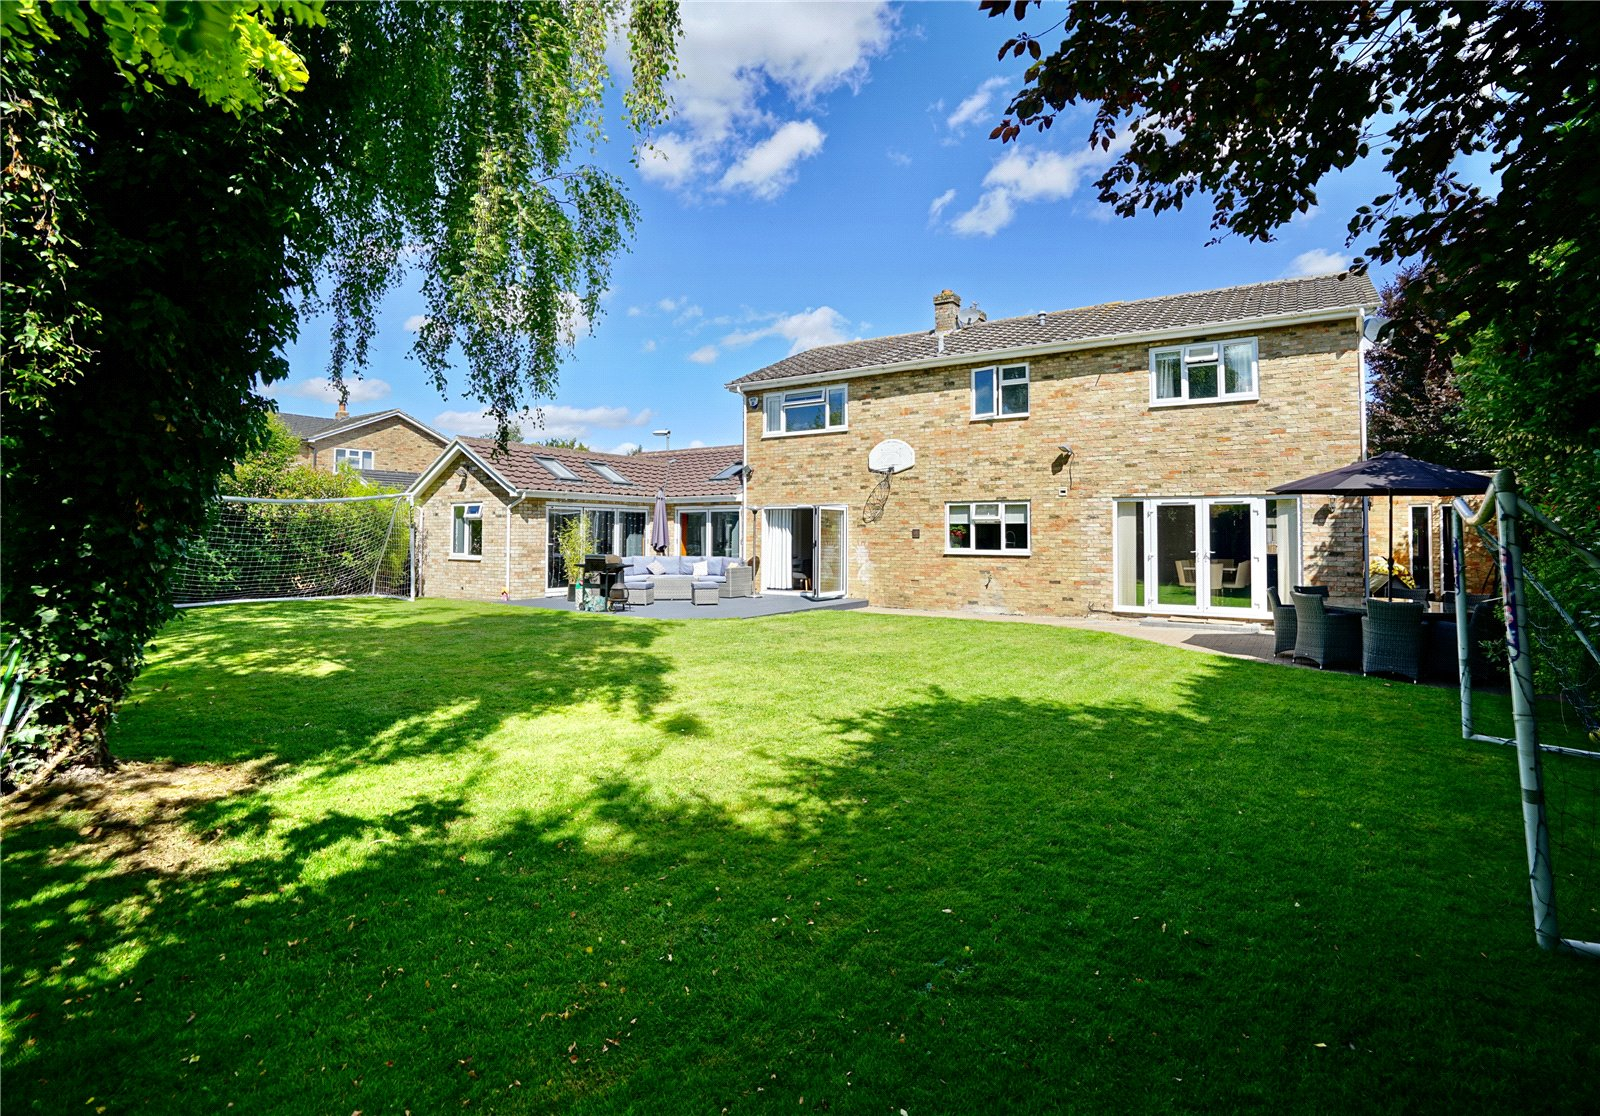 4 bed house for sale in Bluntisham, PE28 3LS, PE28